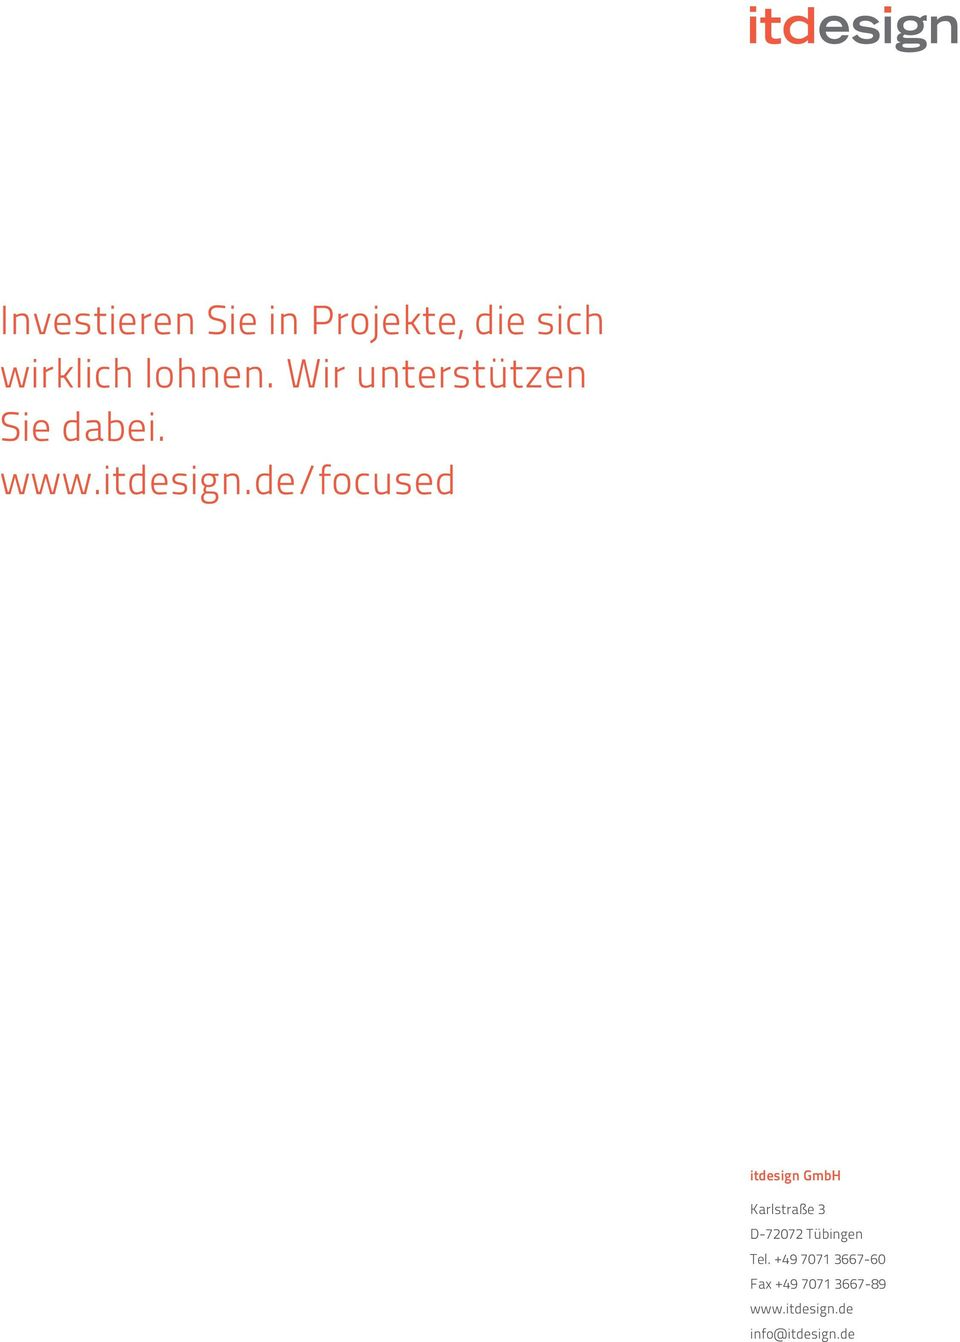 de/focused itdesign GmbH Karlstraße 3 D-72072 Tübingen